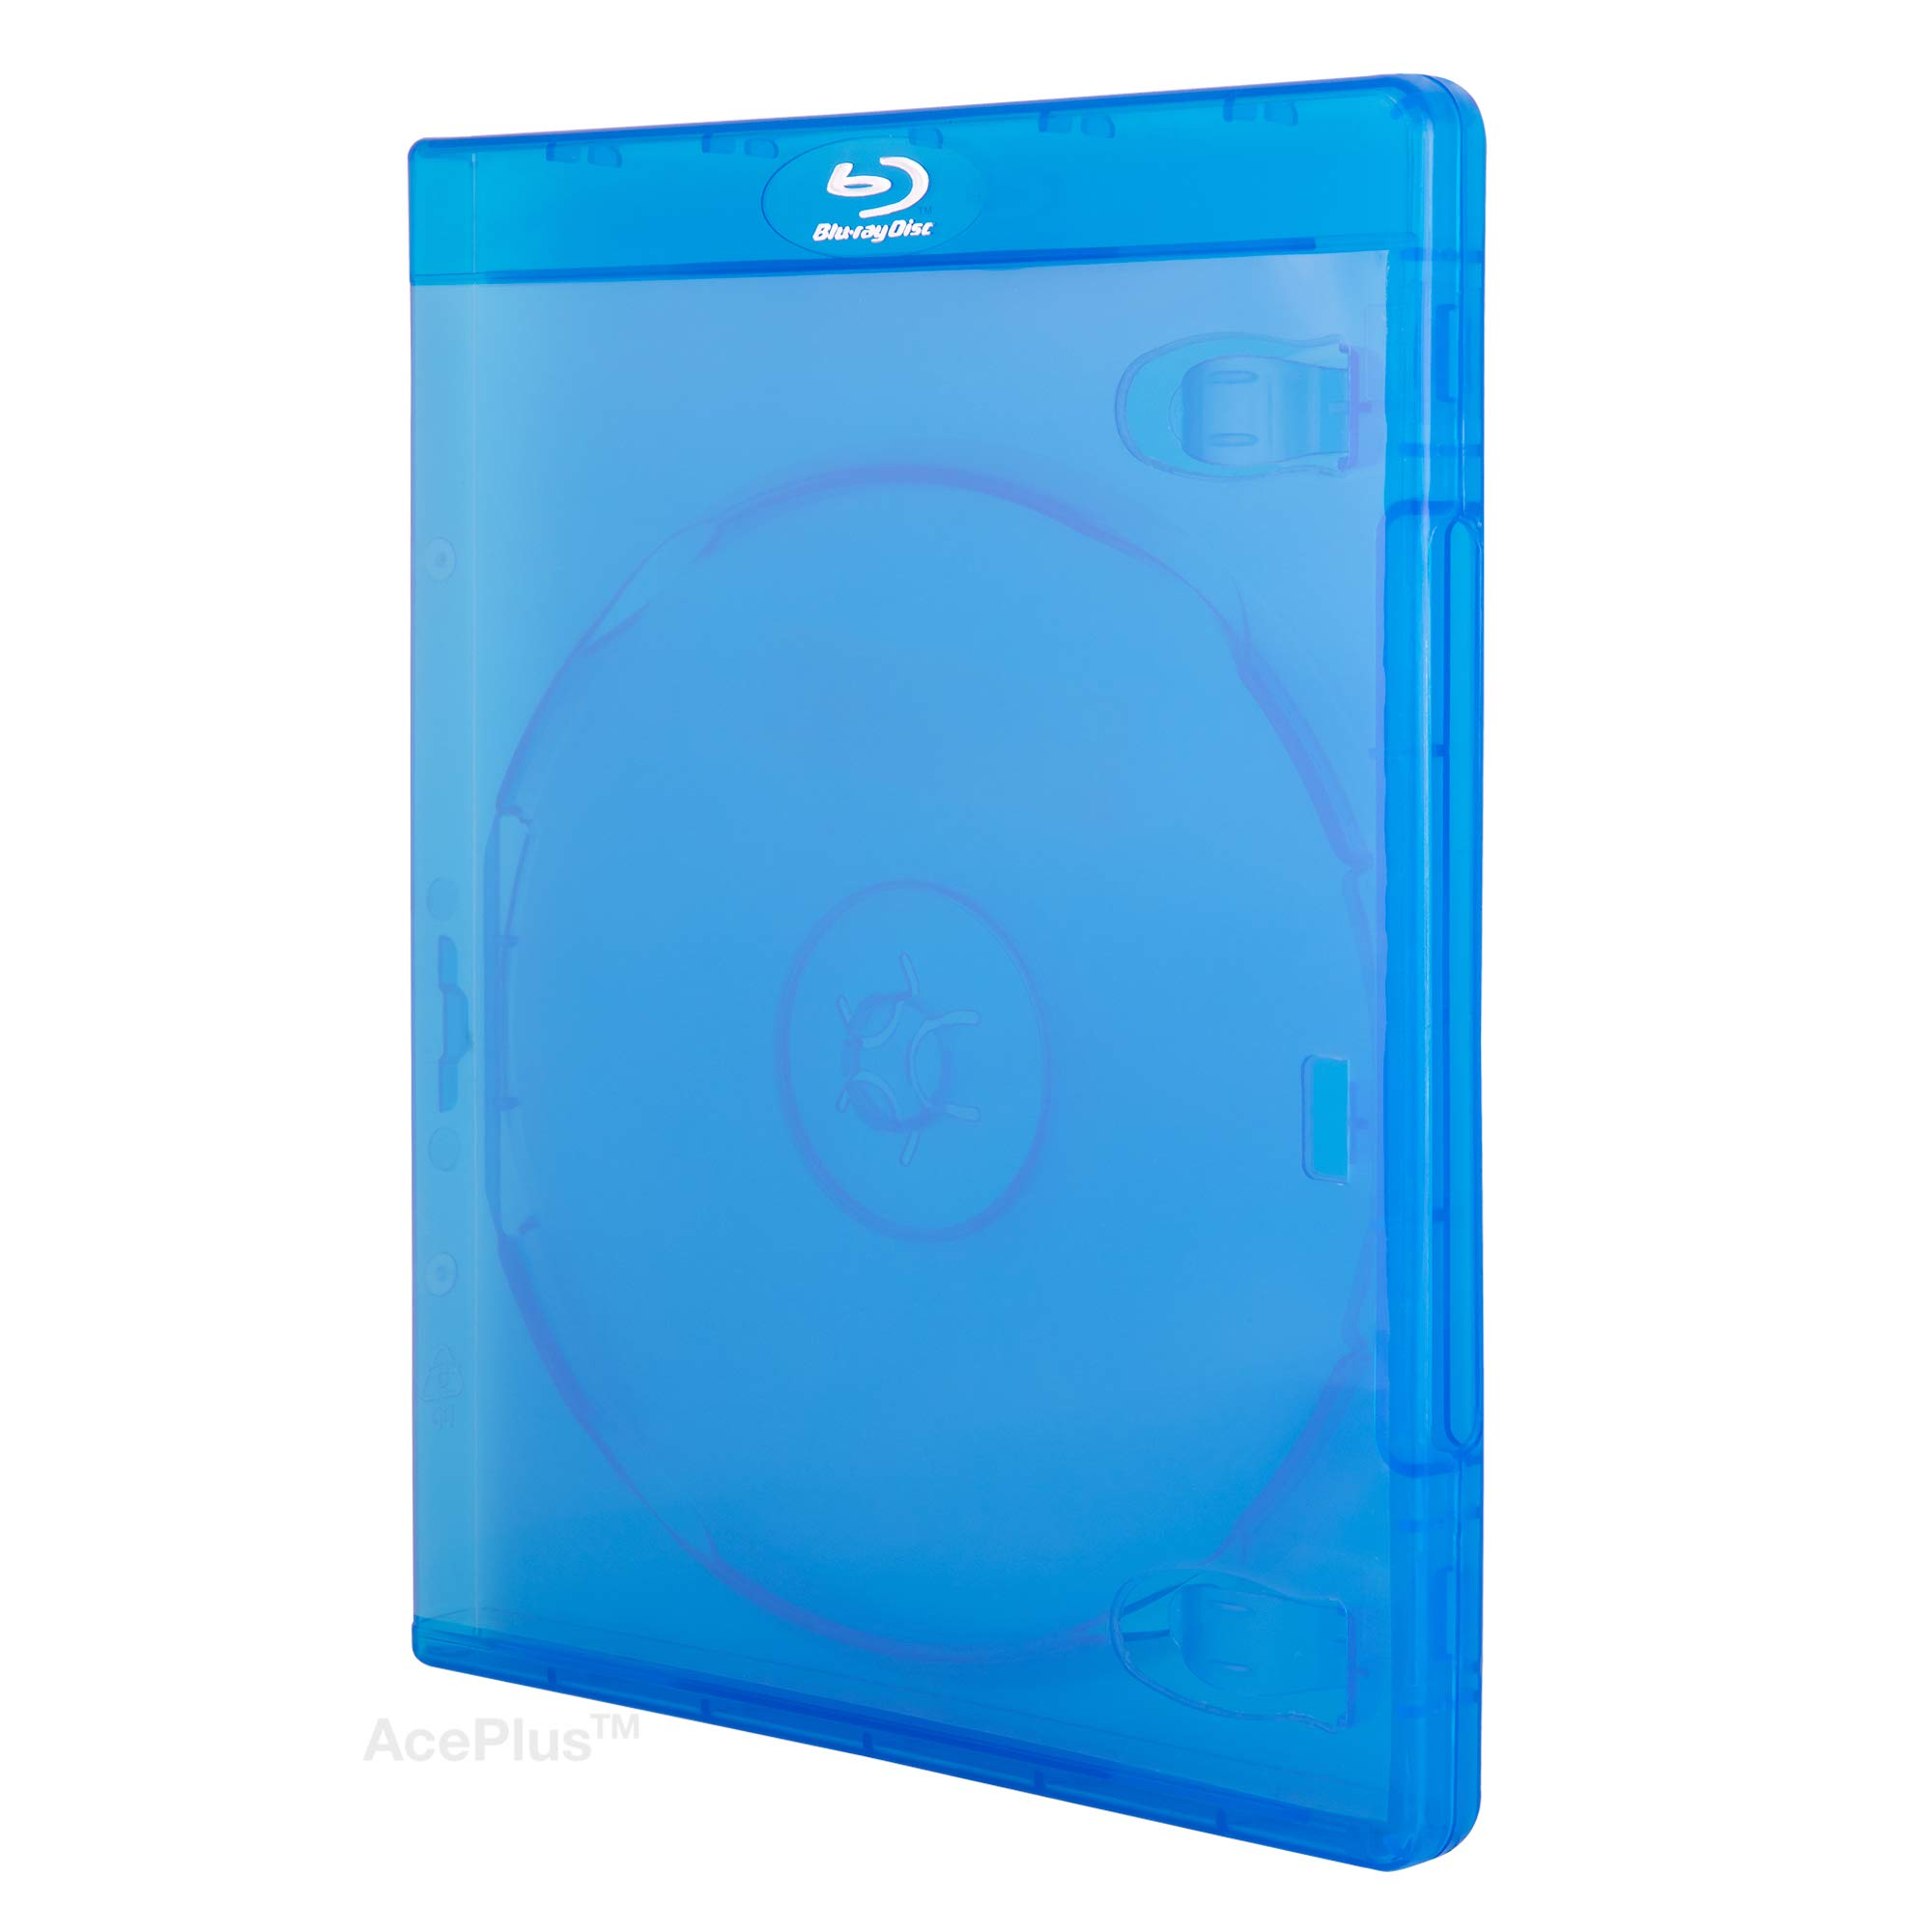 Empty Standard Double Blue Replacement Boxes//Cases for Blu-Ray Disc Movies BR2R12BL 10